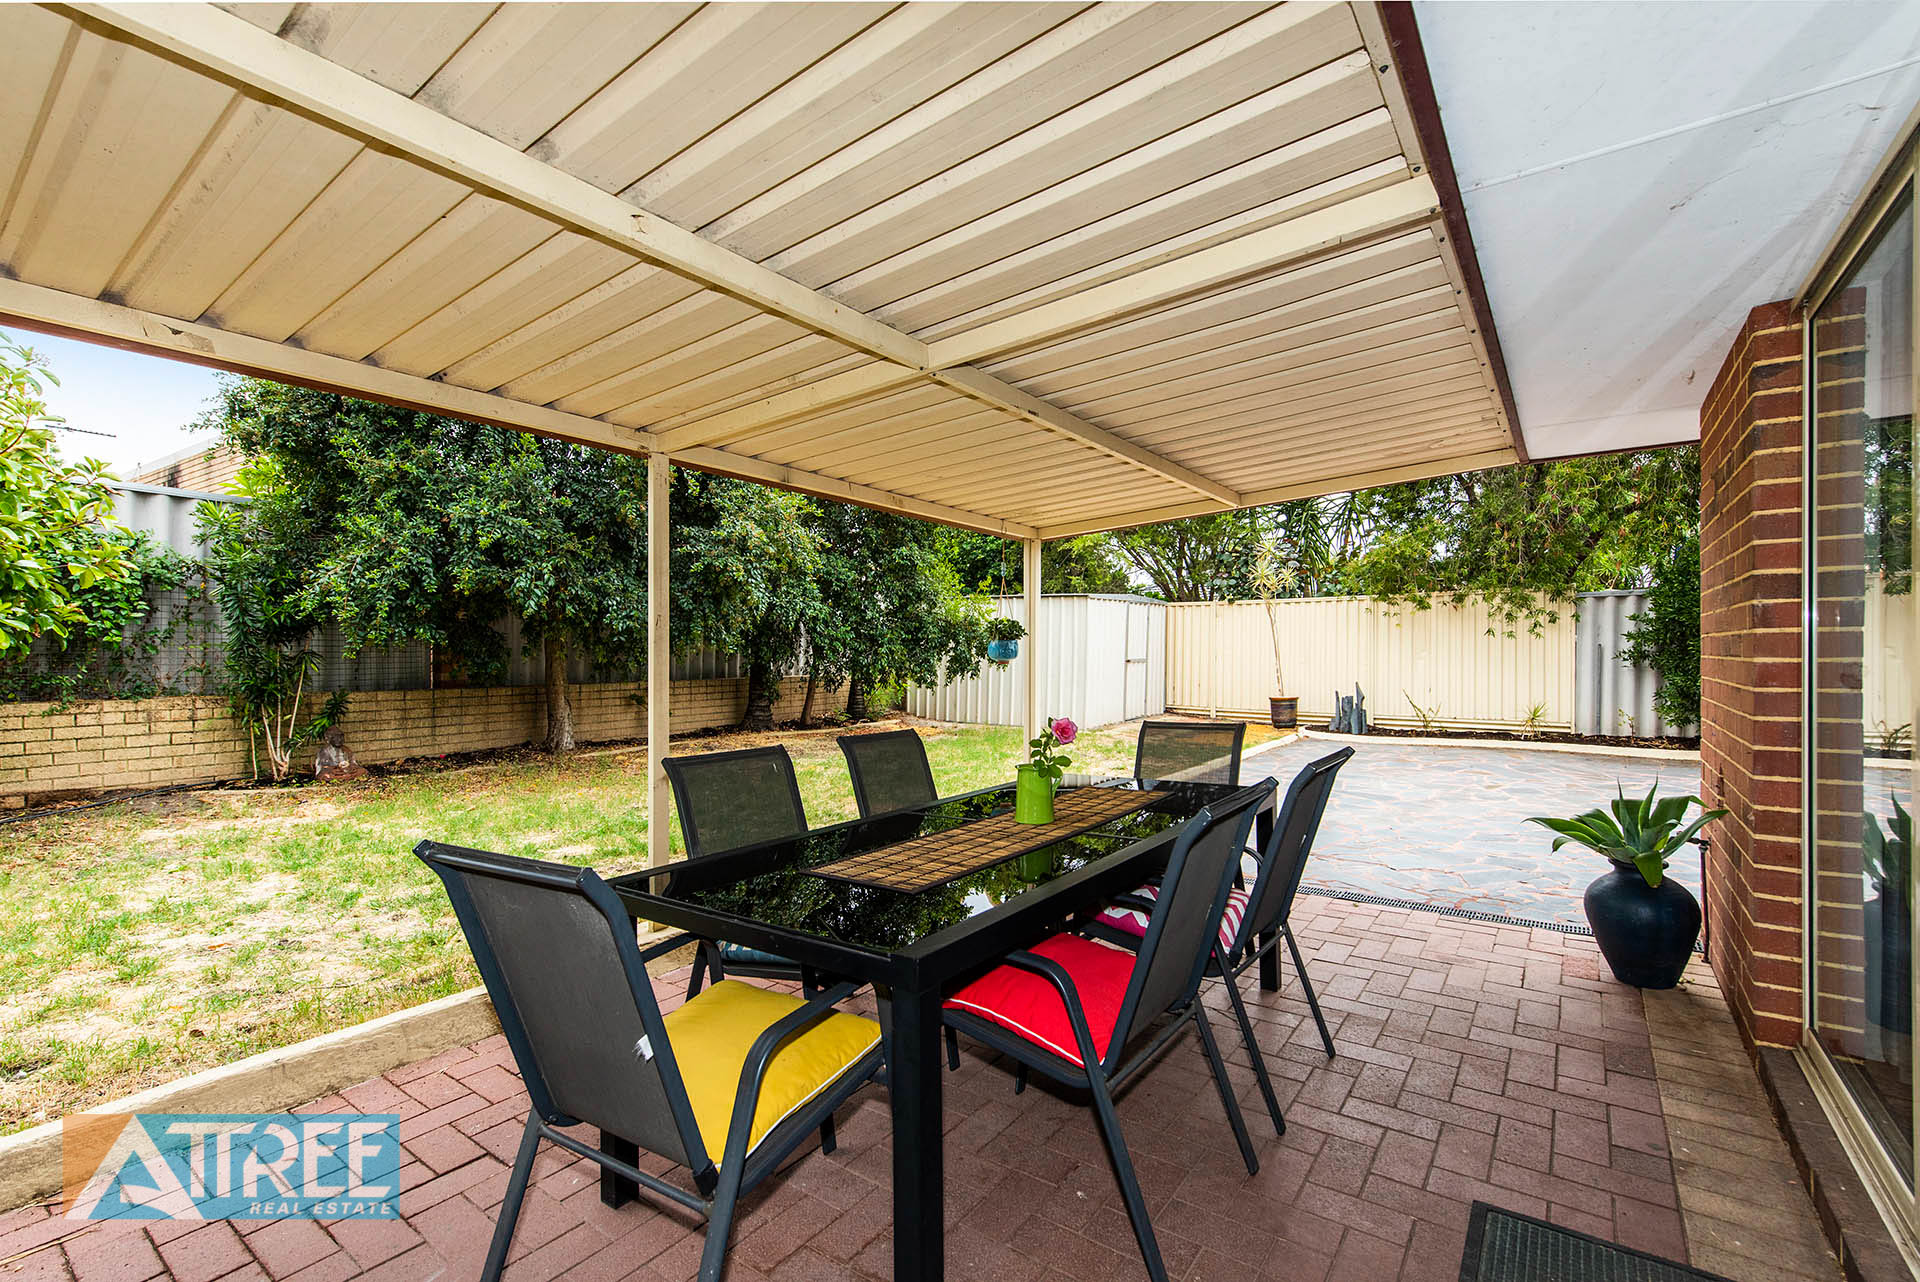 Property for sale in THORNLIE, 3 Exmouth Place : Attree Real Estate